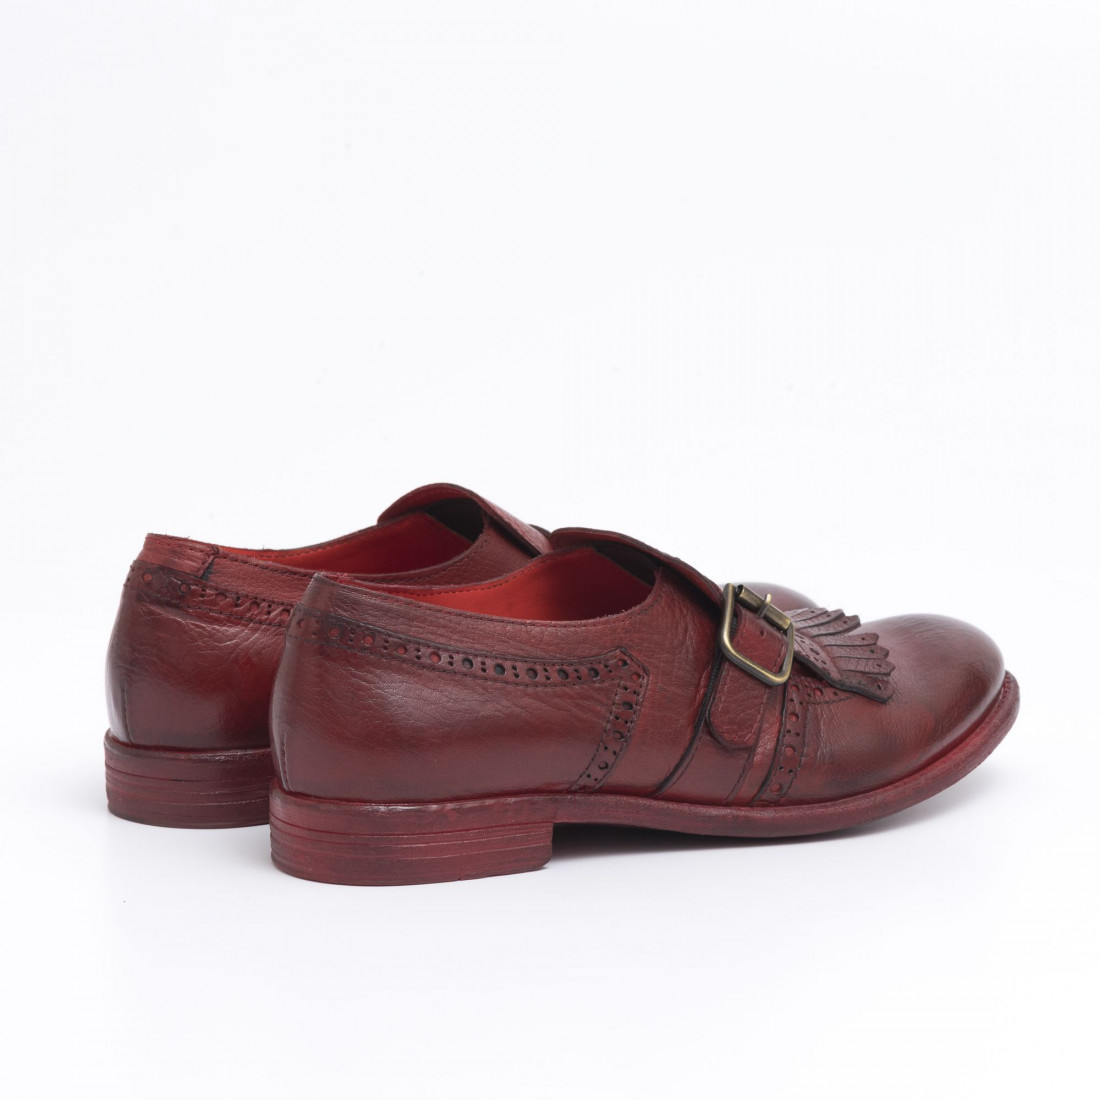 monk straps woman hundred w246 08 bufalo rosso